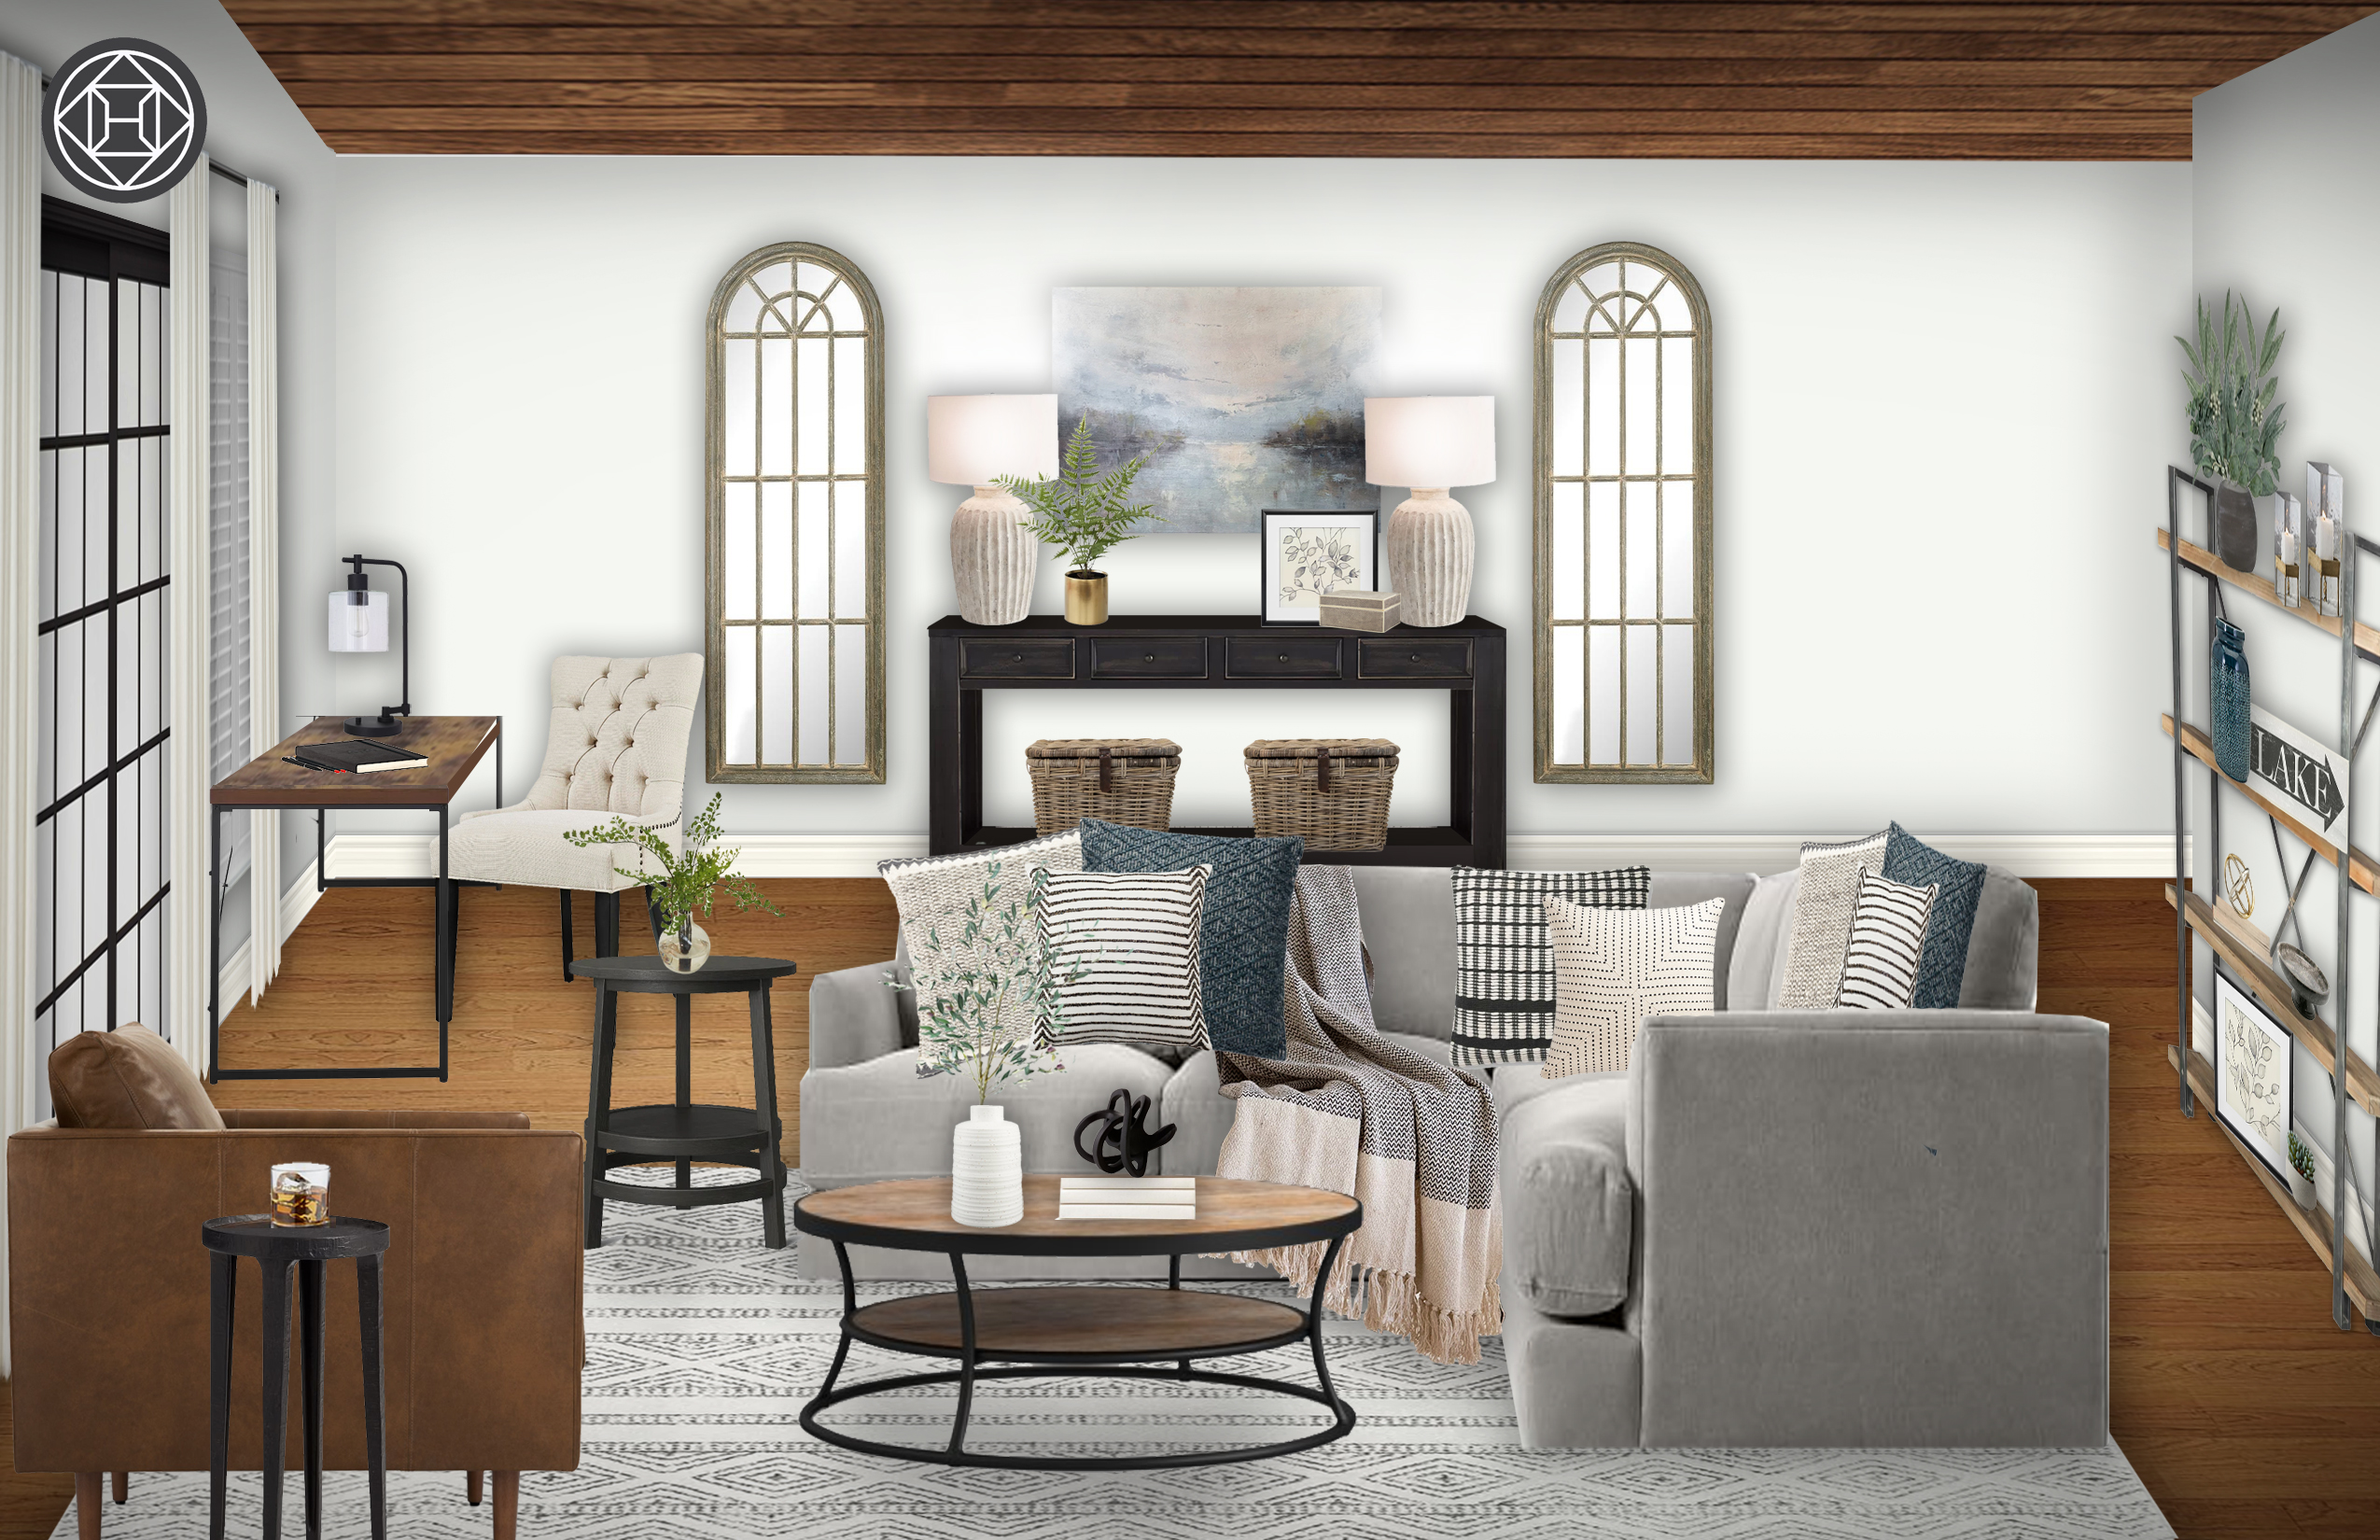 Farmhouse Rustic Transitional Midcentury Modern Living